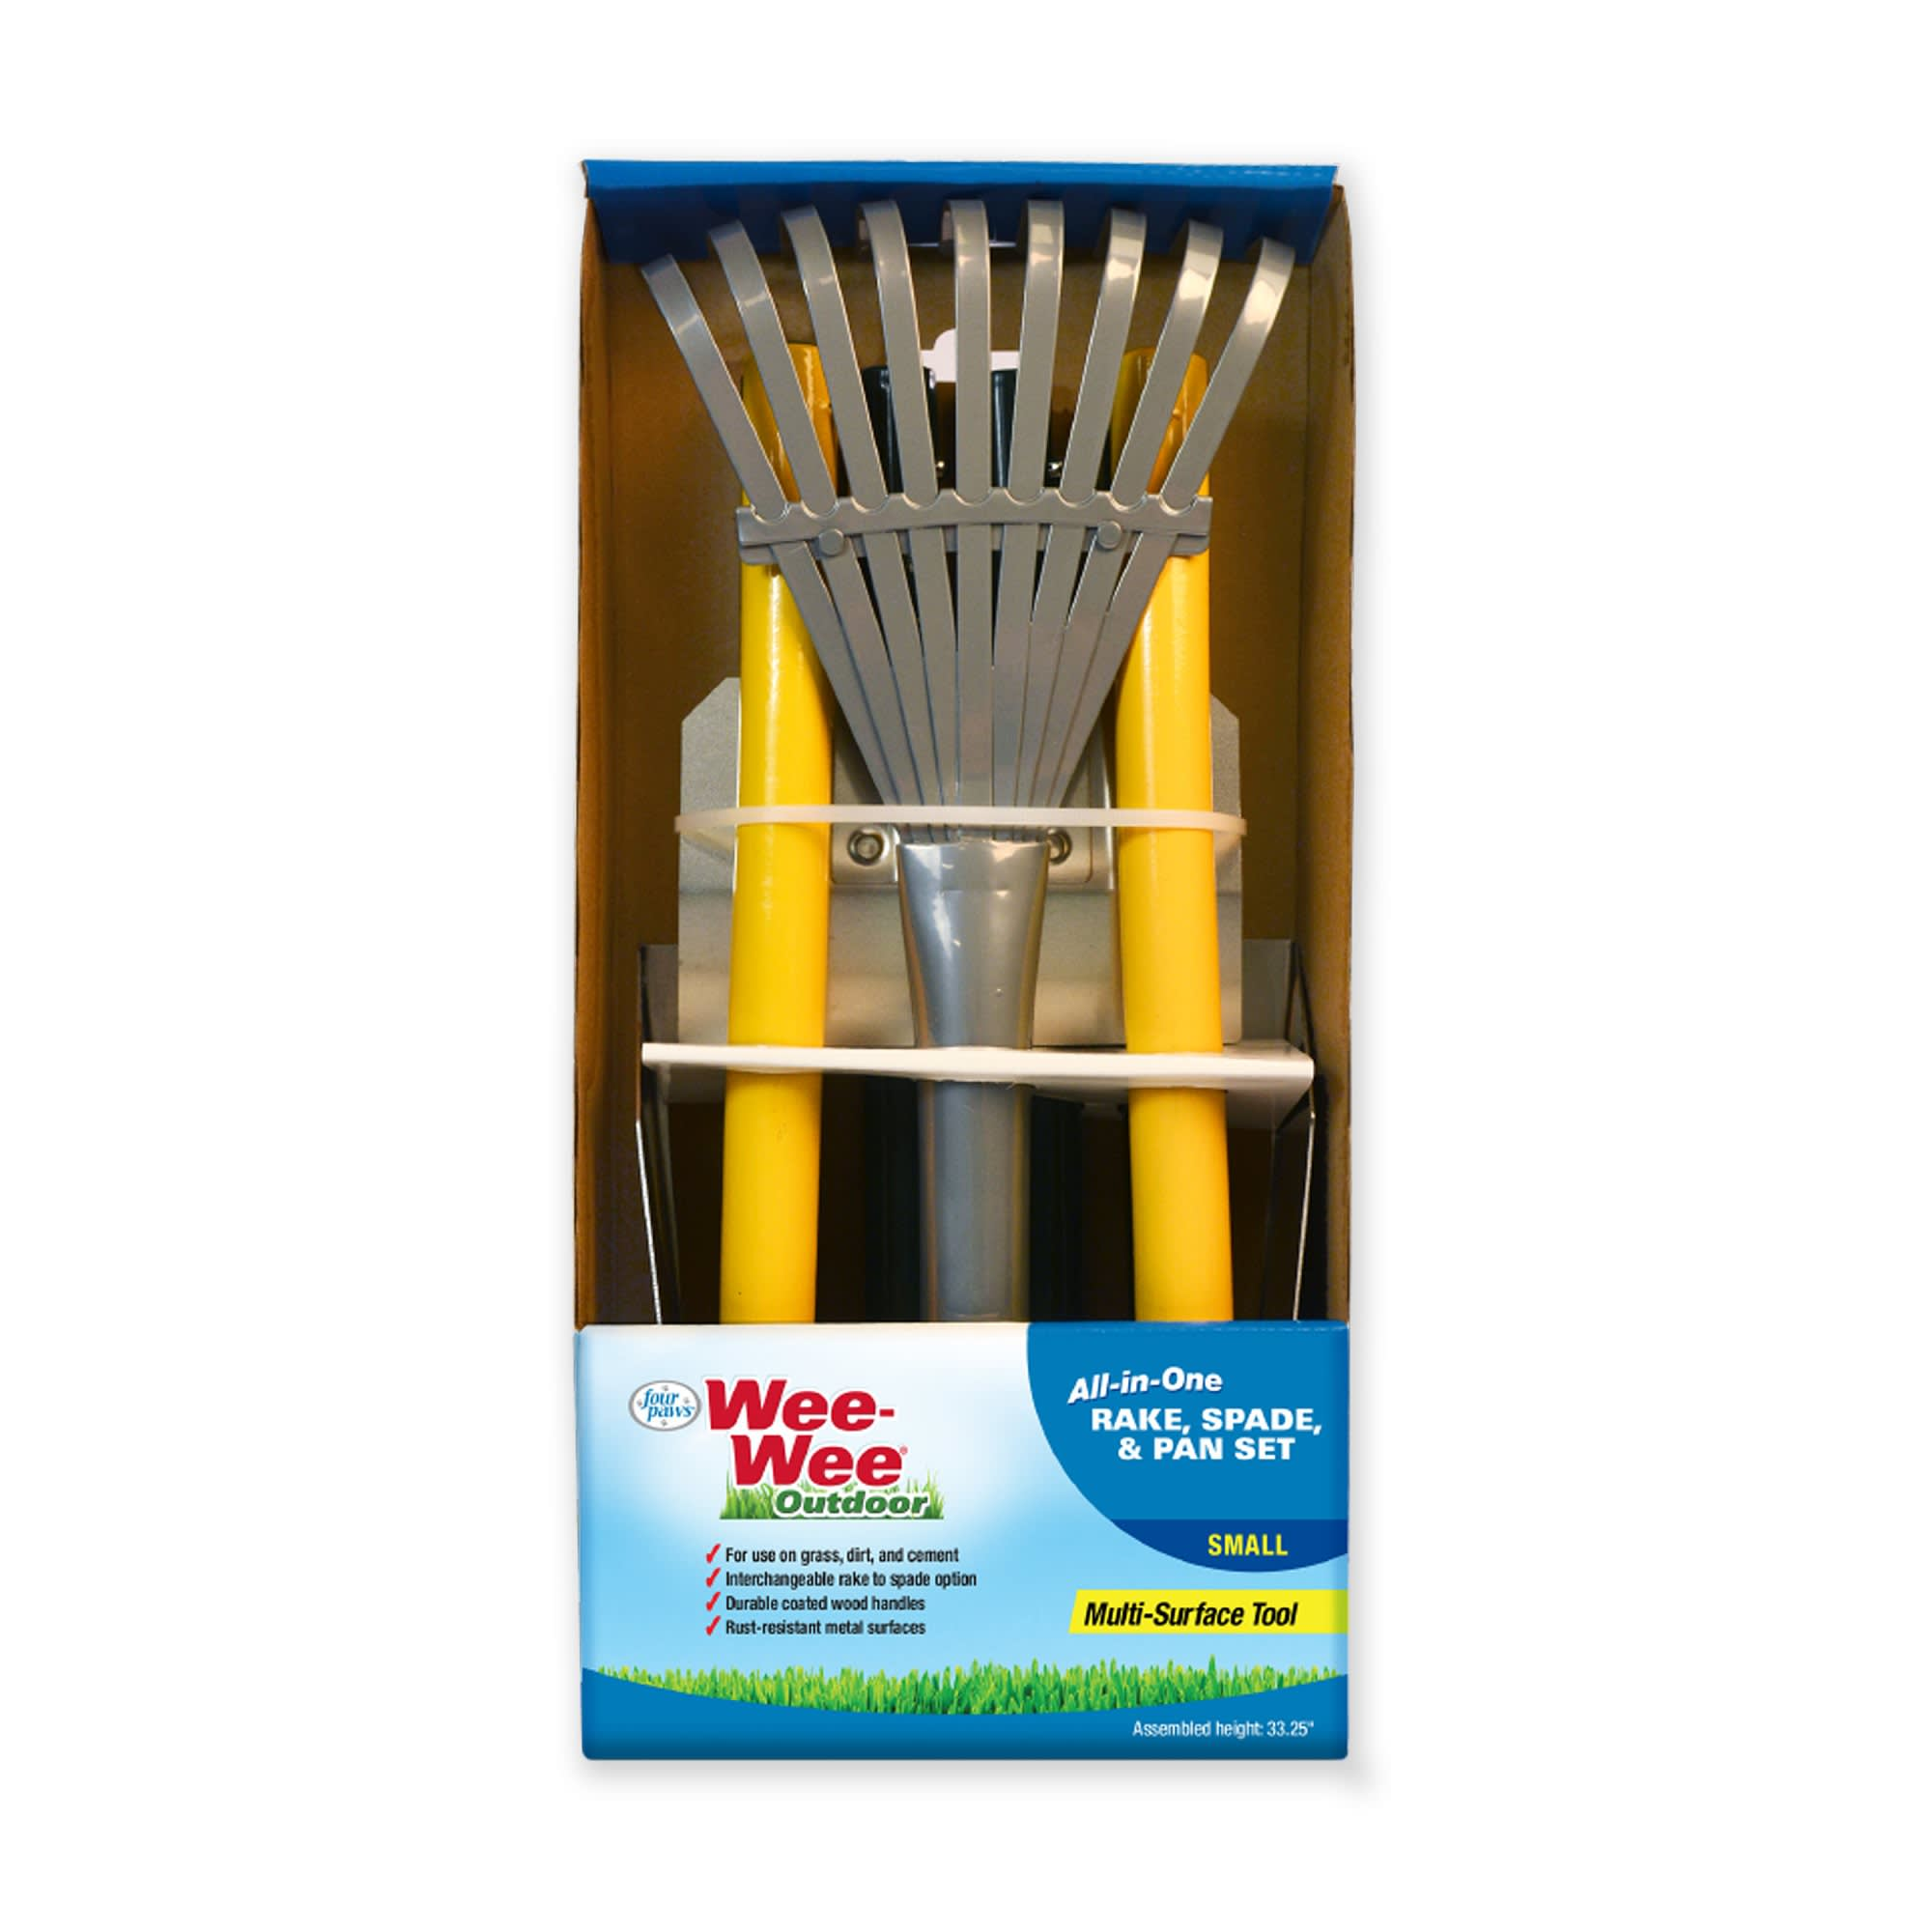 Wee-wee All-In-One Rake, Spade & Pan Set for Dogs, Small